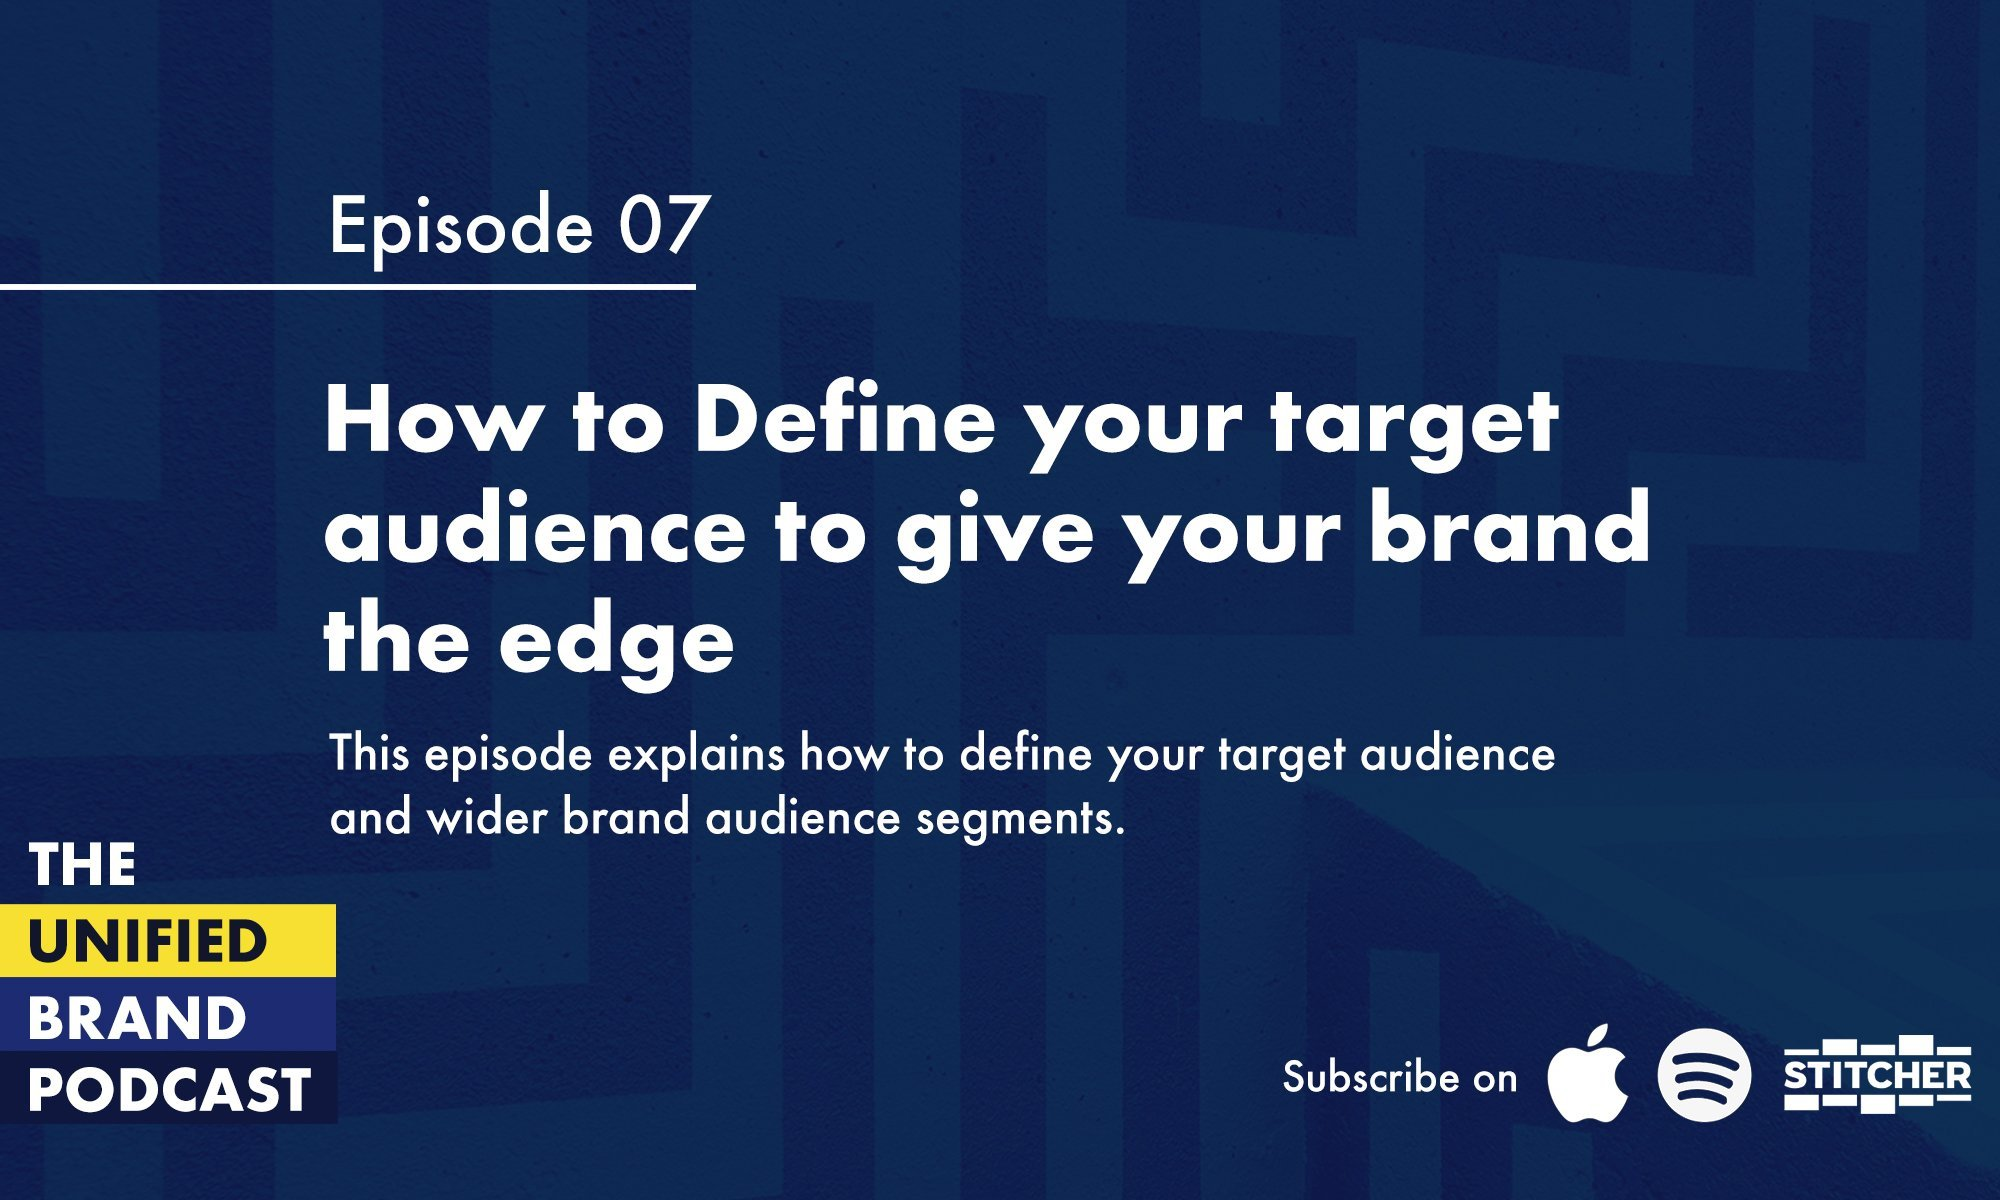 How to Define your target audience to give your brand the edge